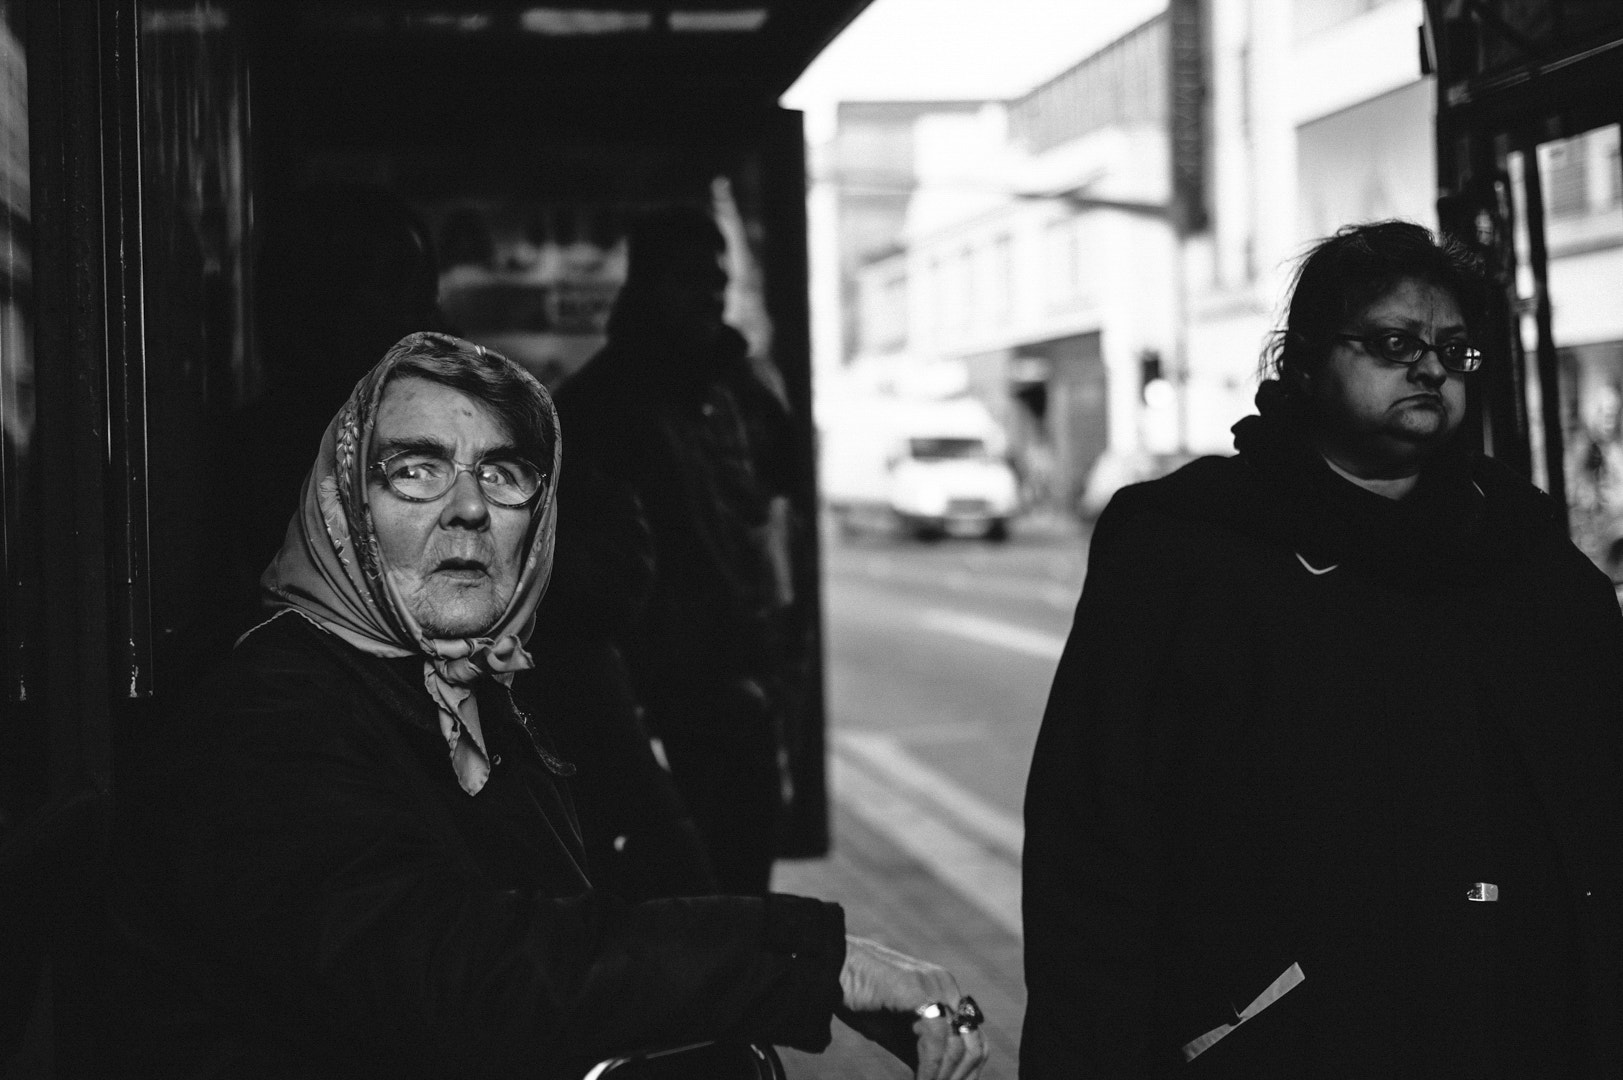 Photograph Tooting. by Paul Bence on 500px